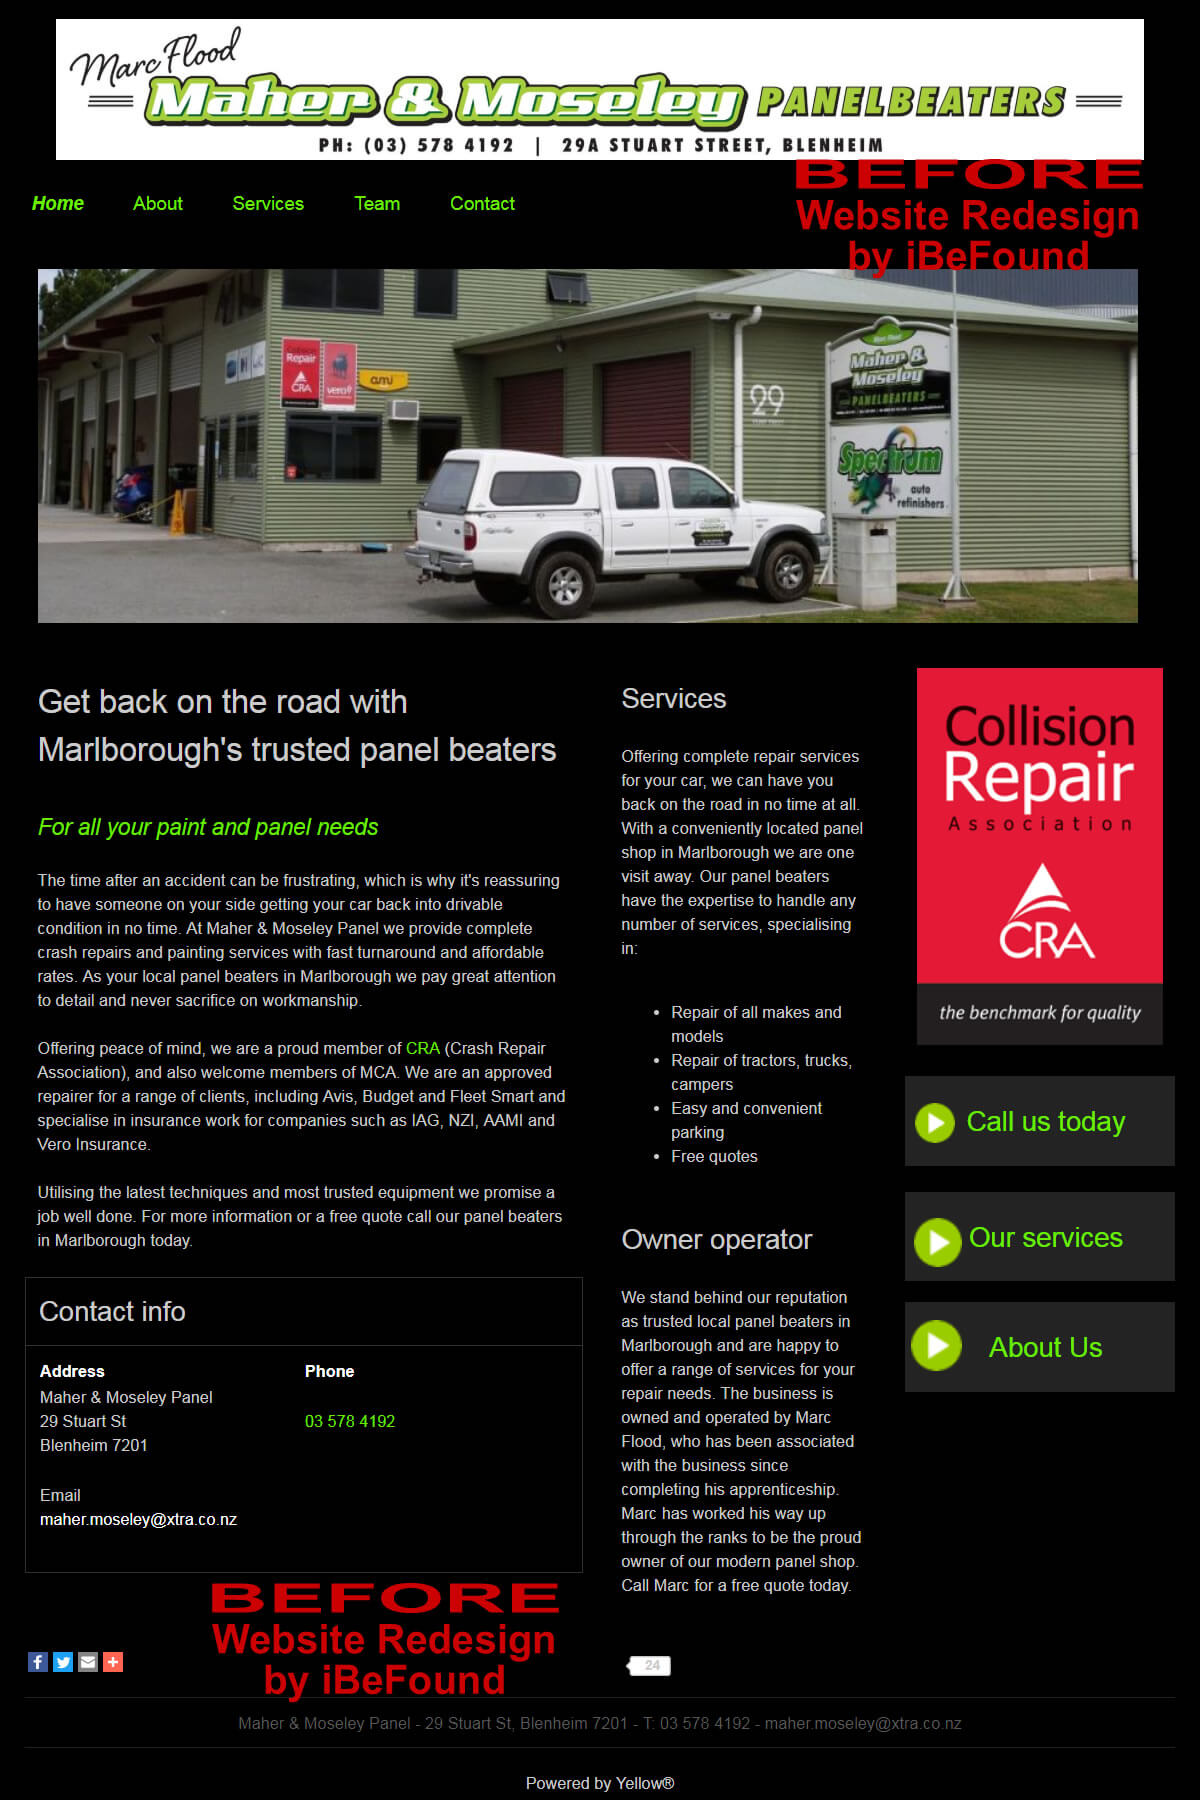 Homepage Of Marlborough Panel And Paint Before Website Redesign By IBeFound Digital Marketing Division